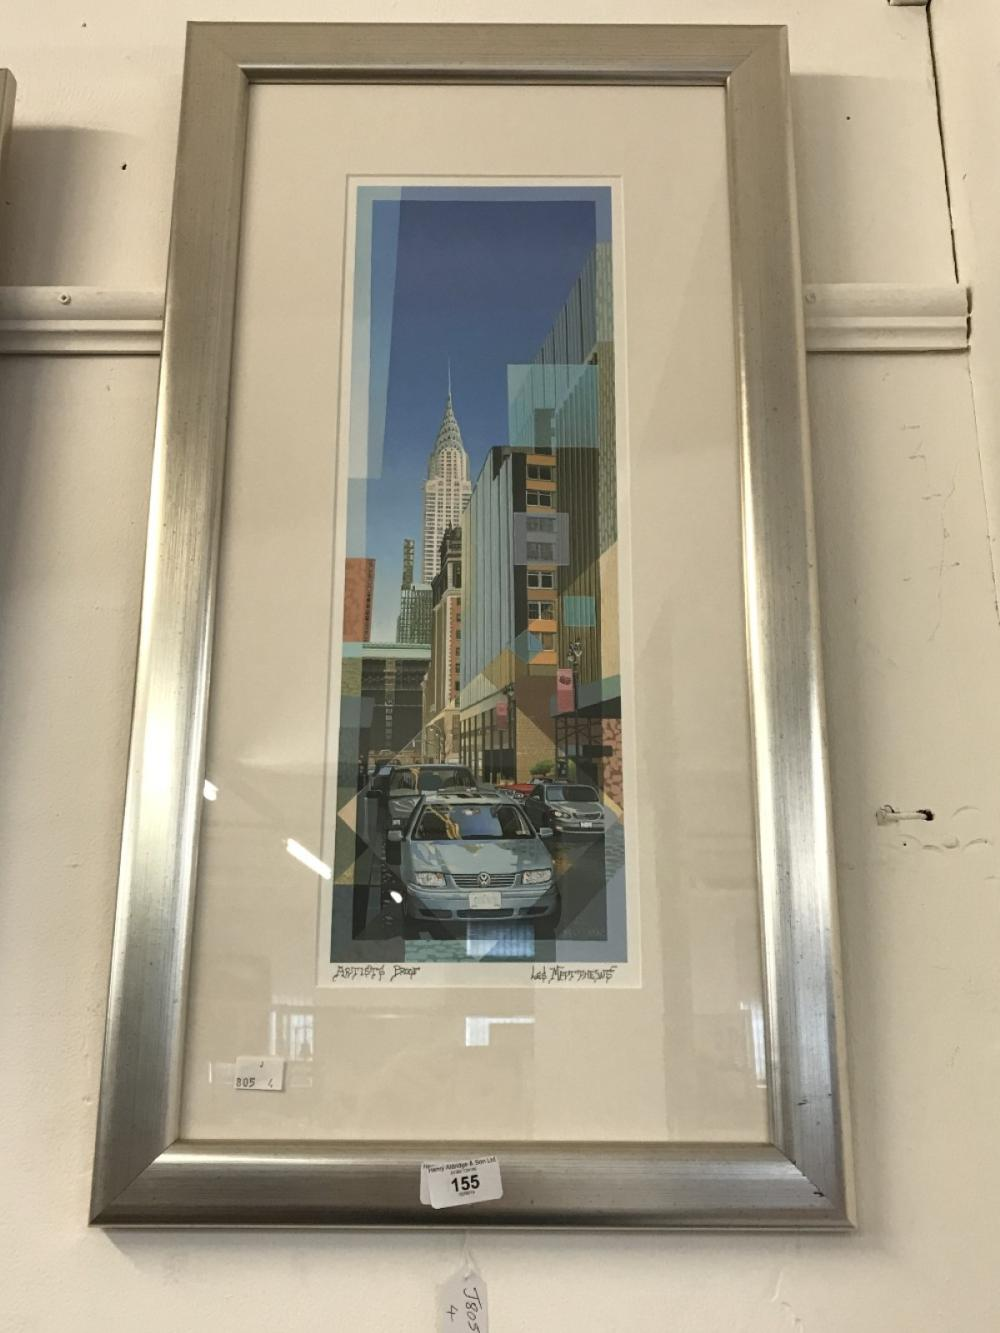 Les Matthew: 20th cent. Artists proof, limited edition print on paper of the Chrysler Building. Fram